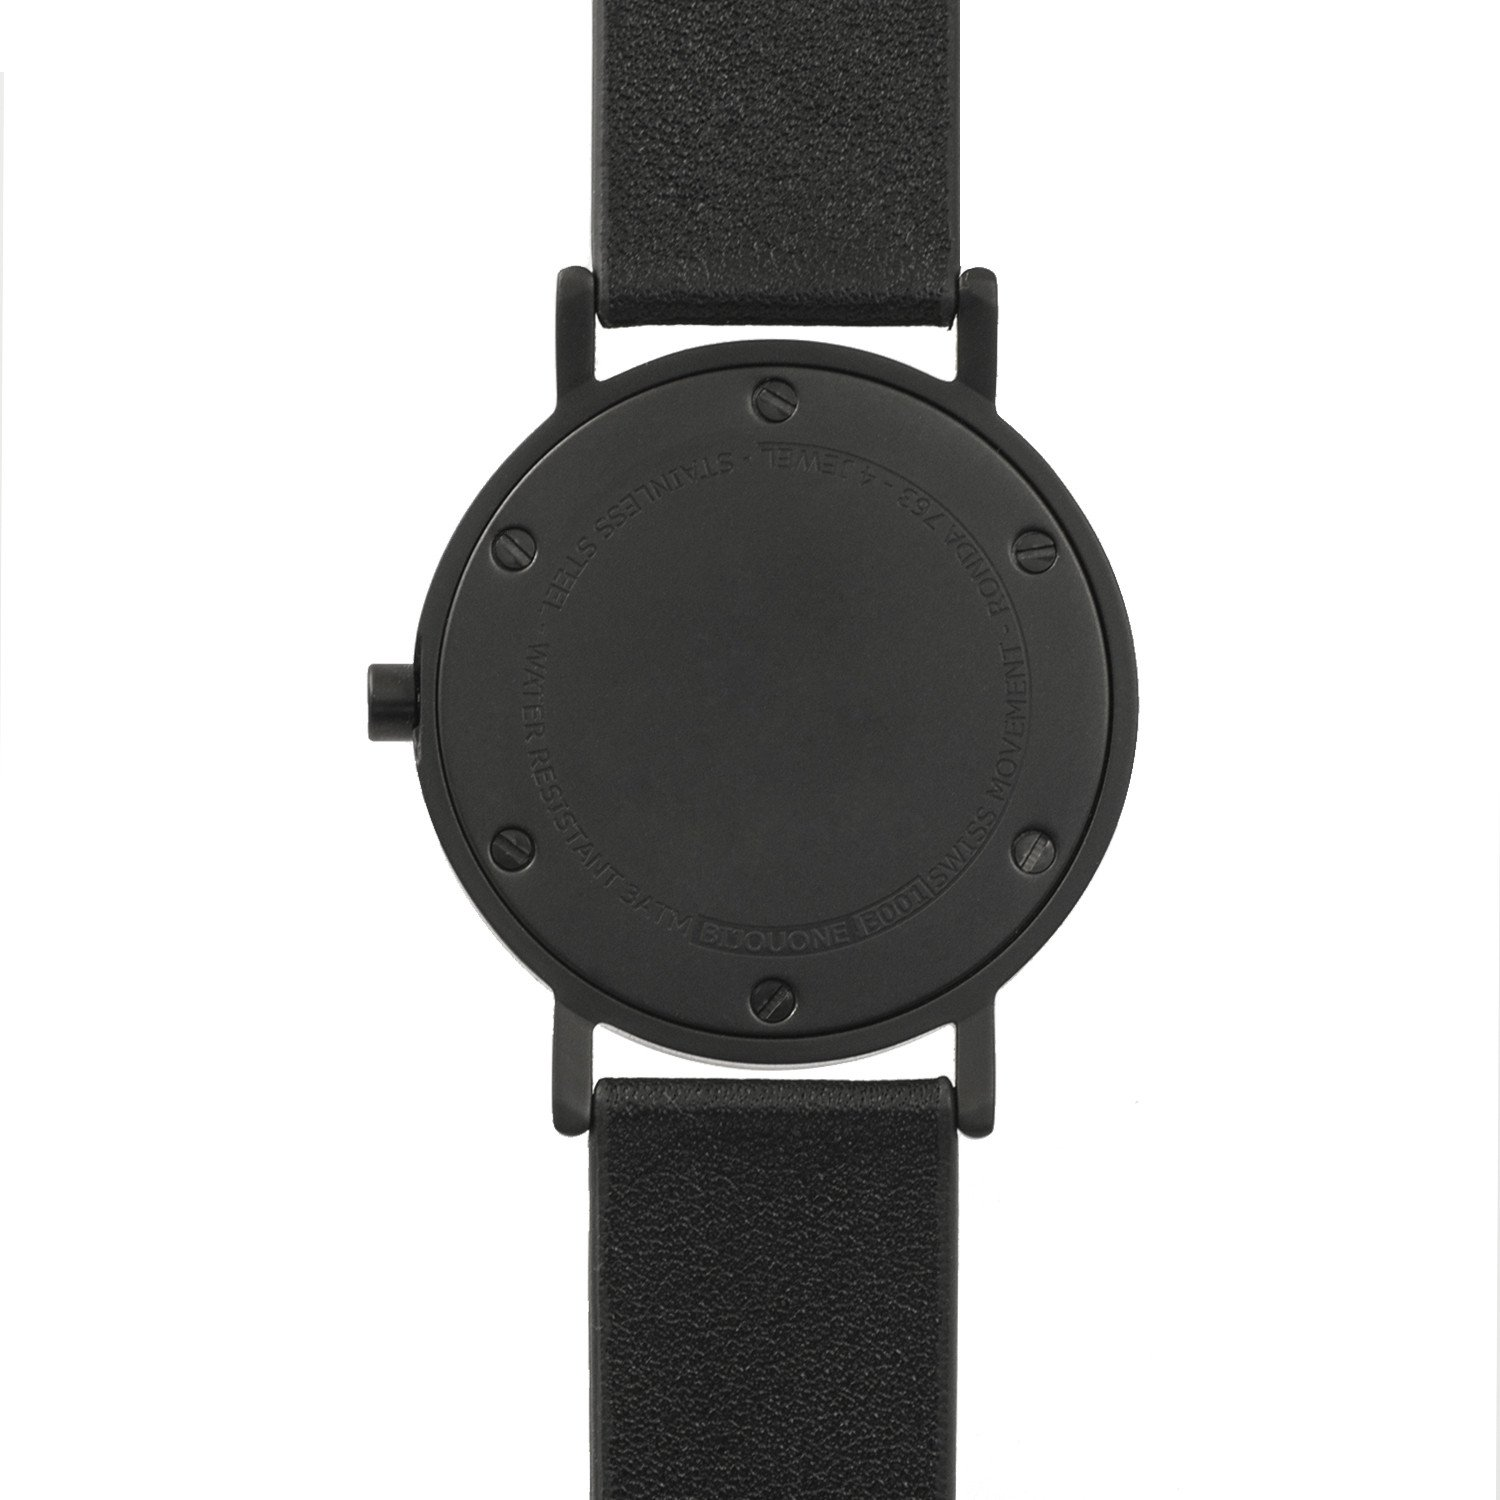 BIJOUONE B001 Black Leather Stainless Steel Swiss Quartz Analog Unisex Watch, Matte Black Case